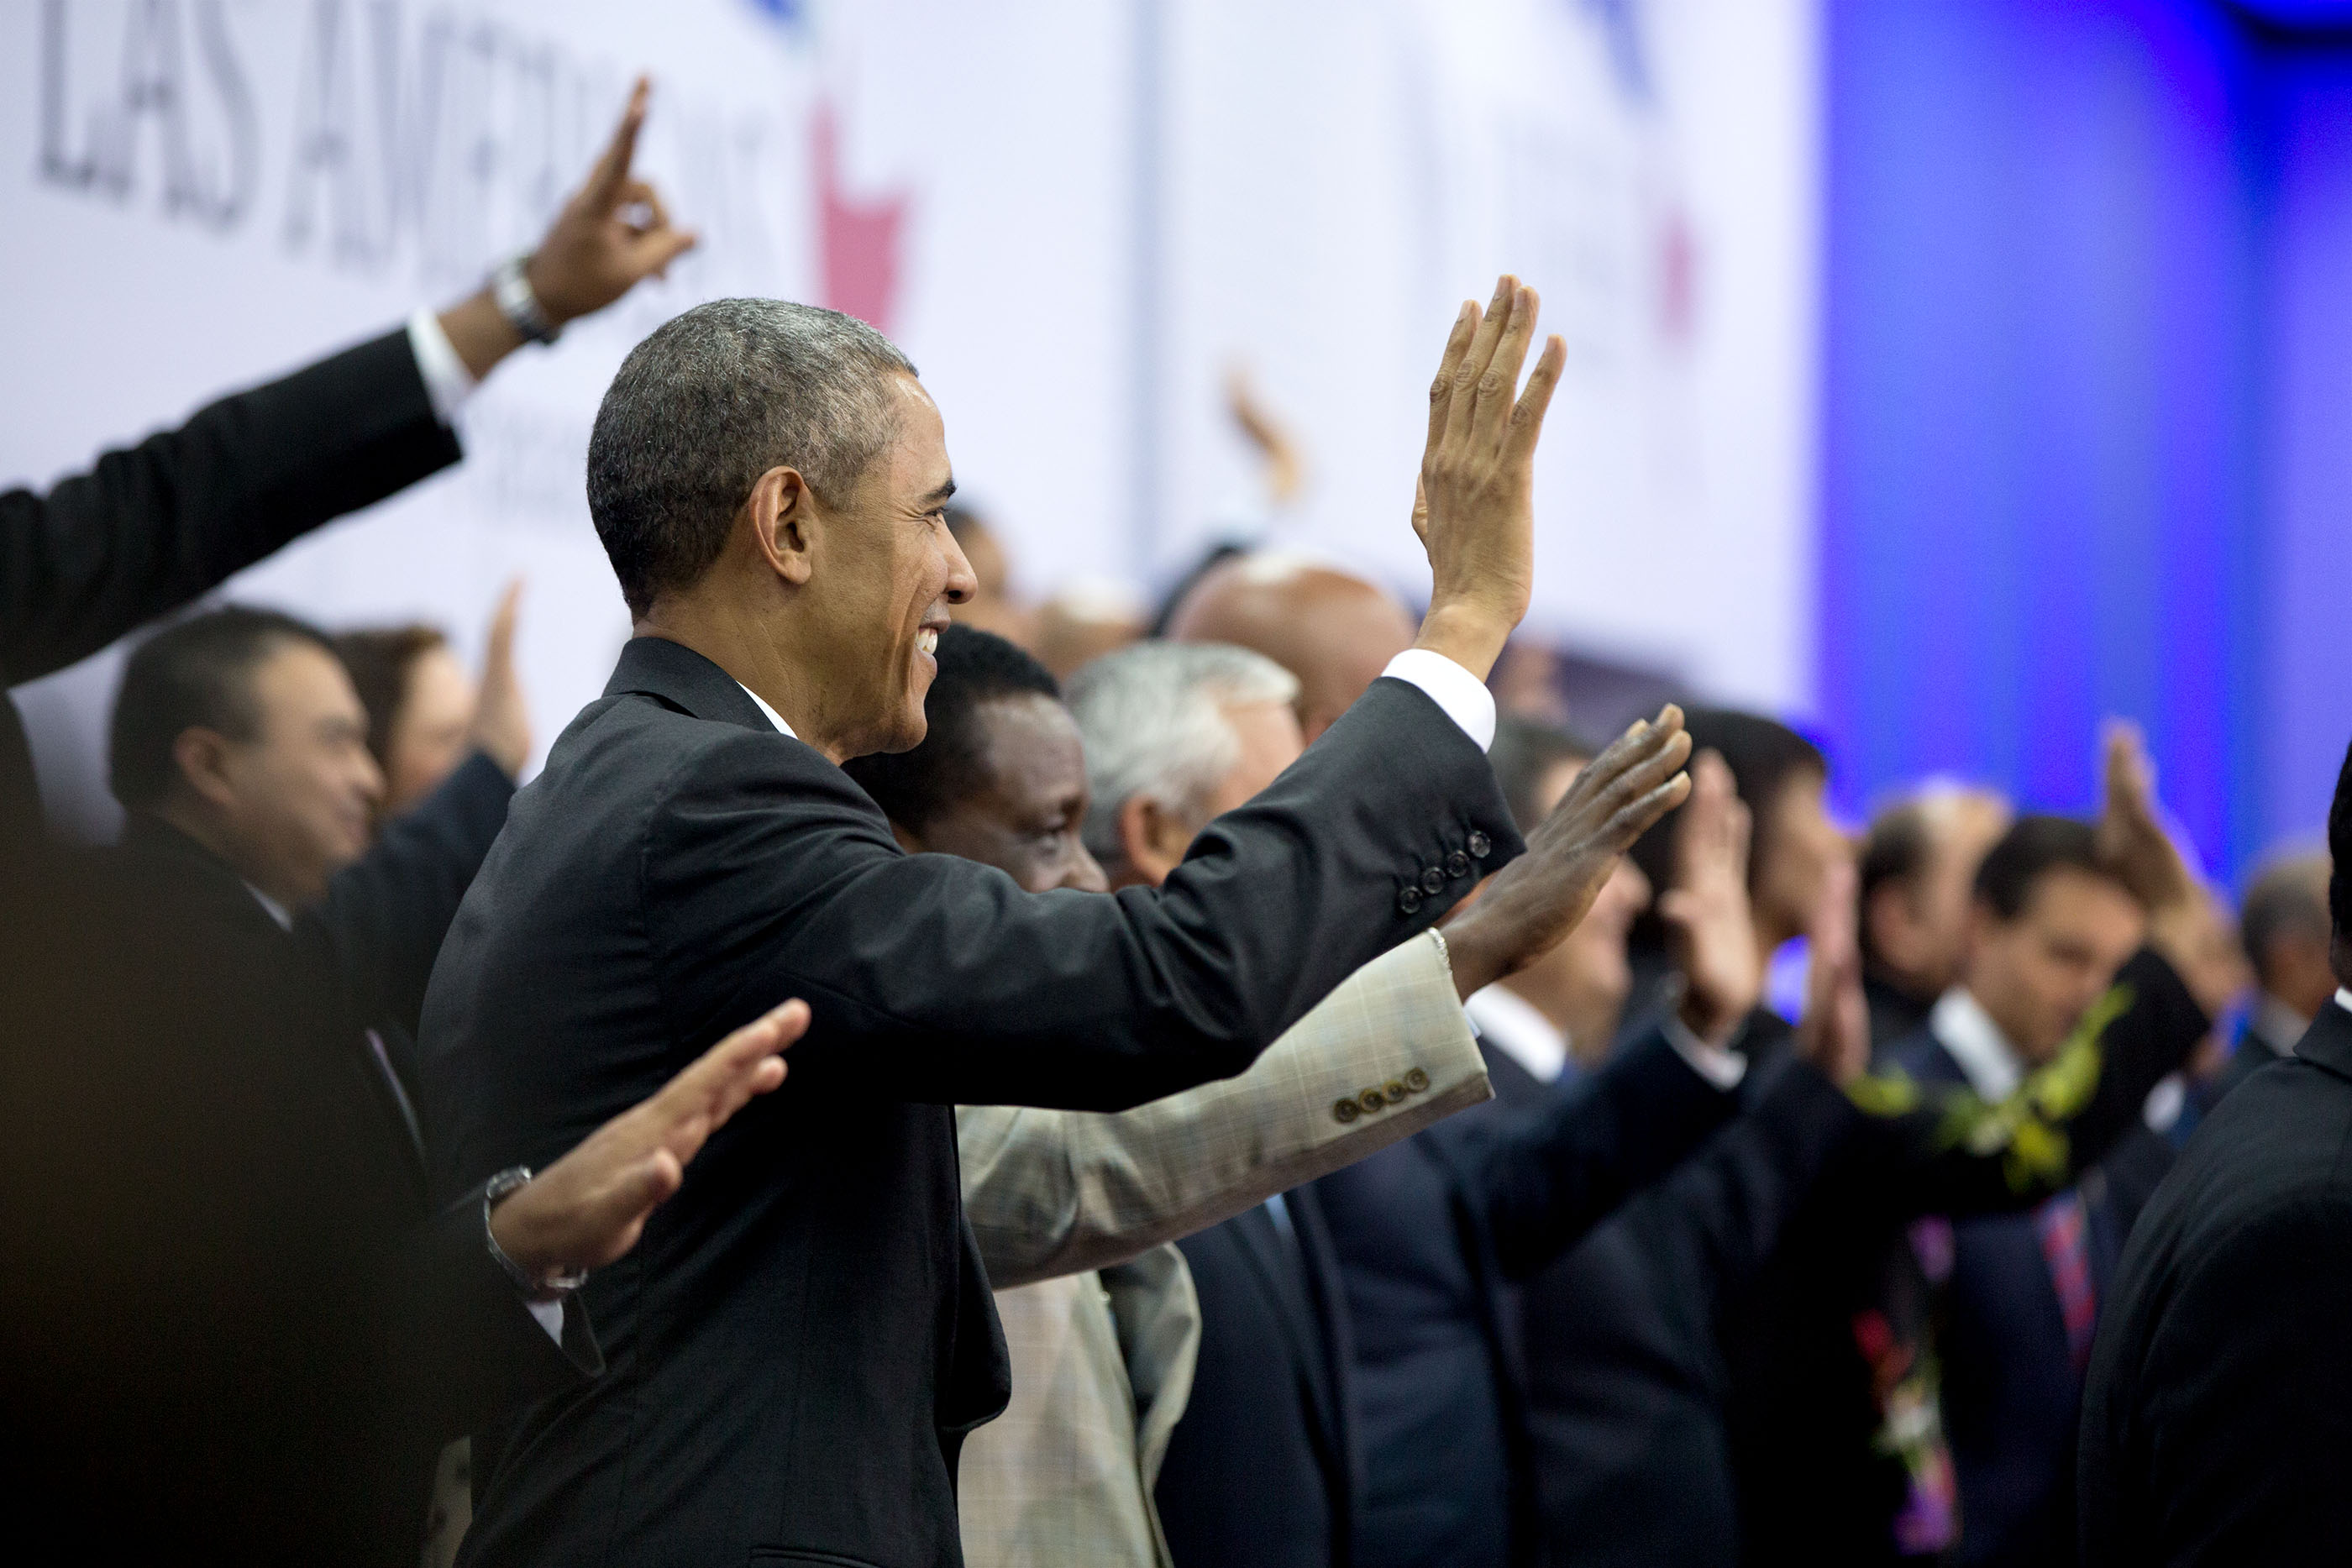 President Obama waves during the group photo. (Official White House Photo by Pete Souza)